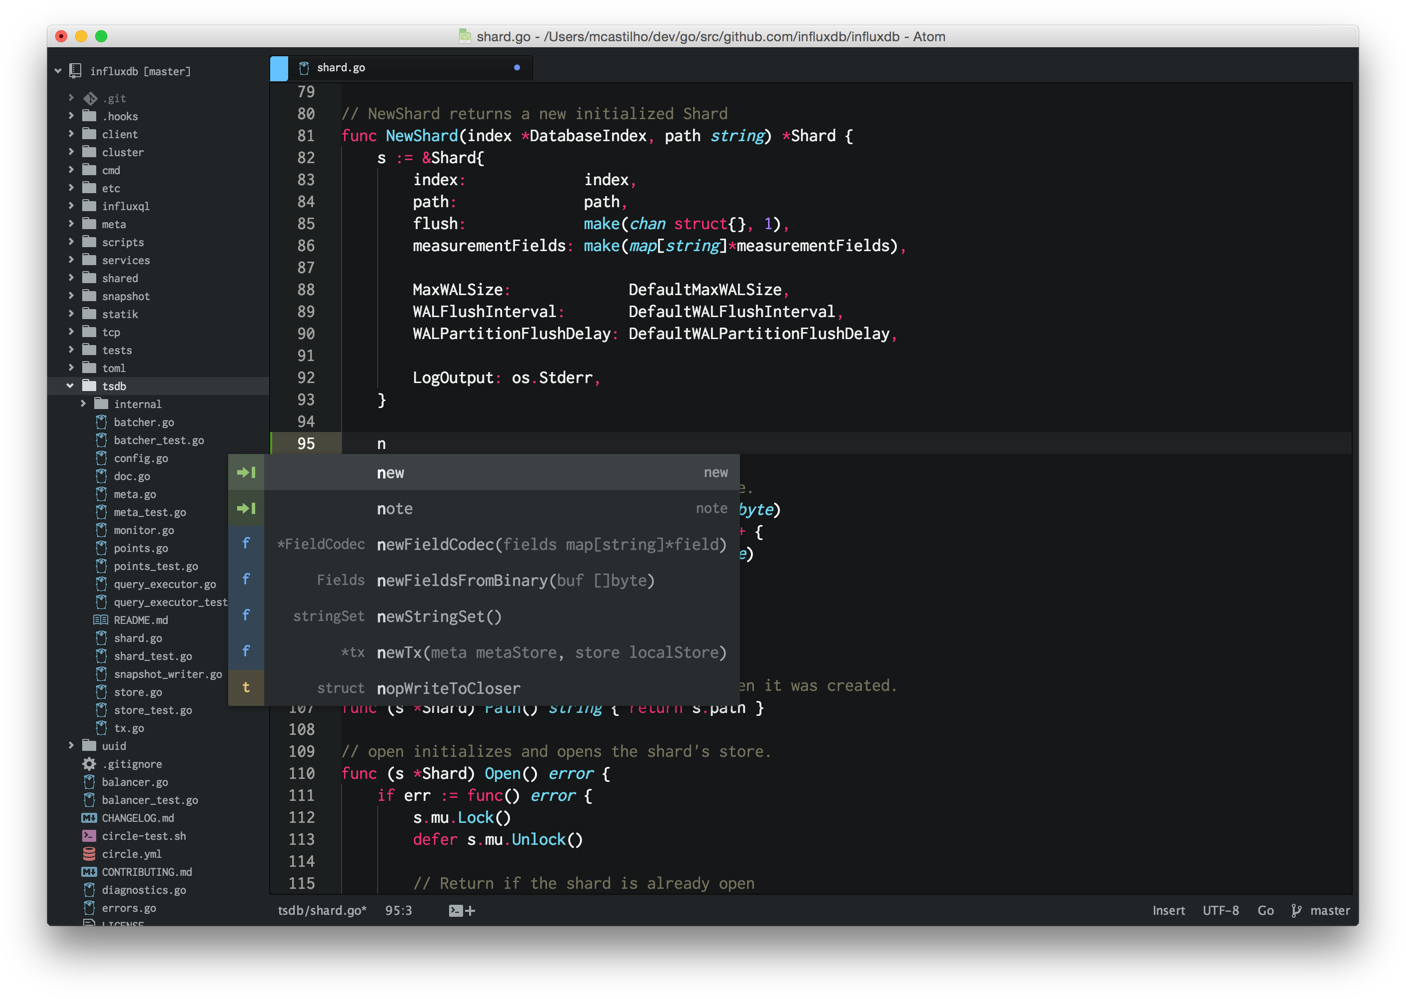 Screenshot of Atom Editor configured for Go development